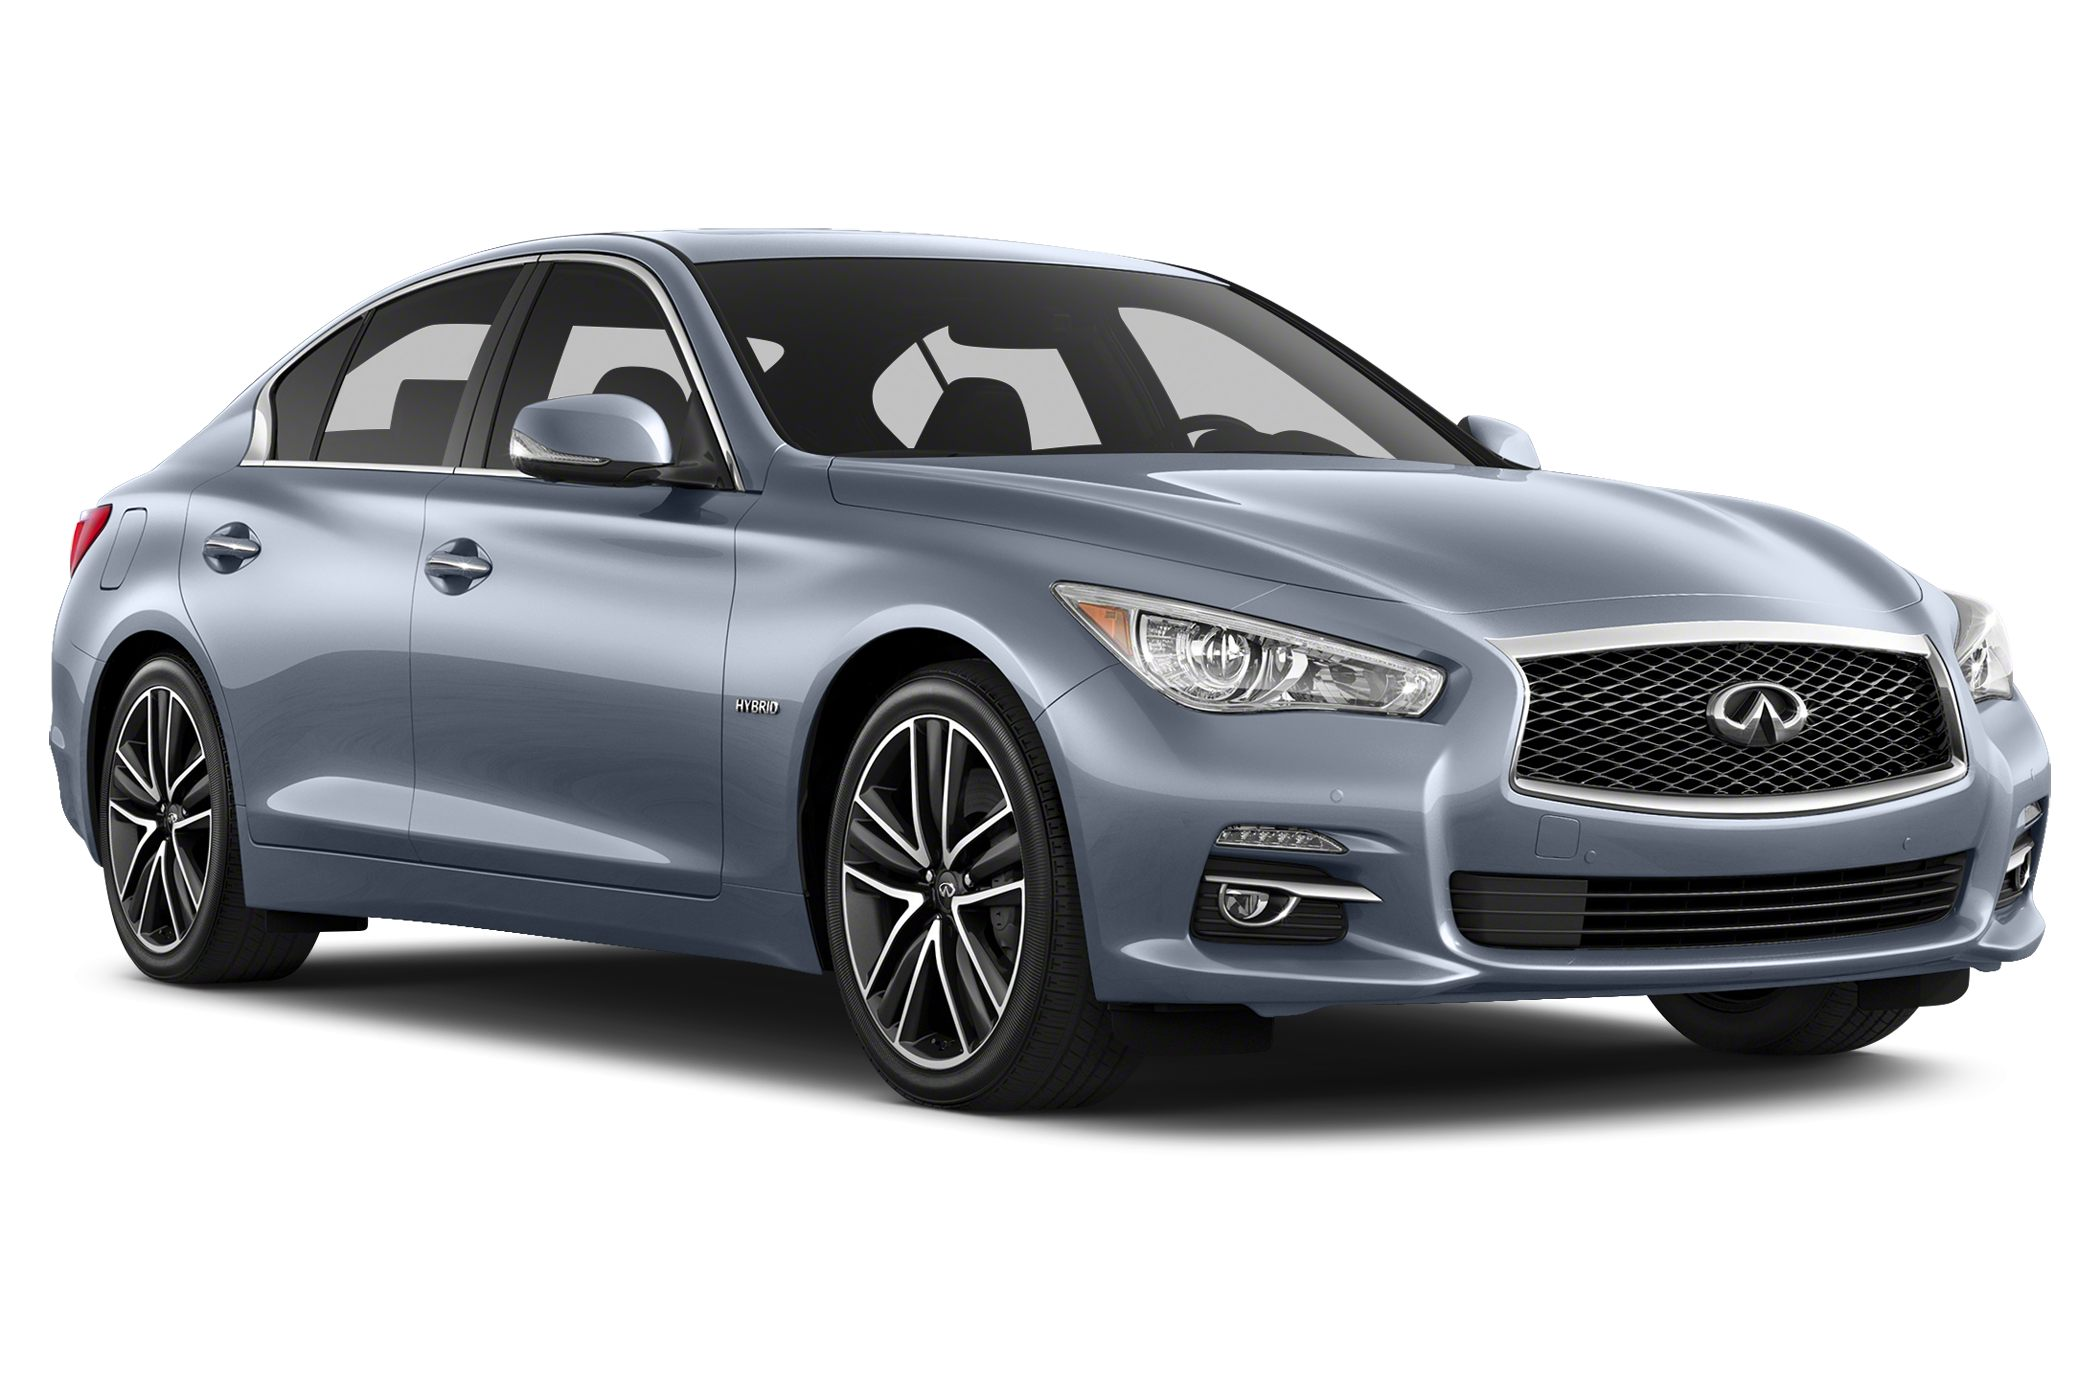 the new infiniti q50 to rent in malaga and gibraltar | brunos car rental